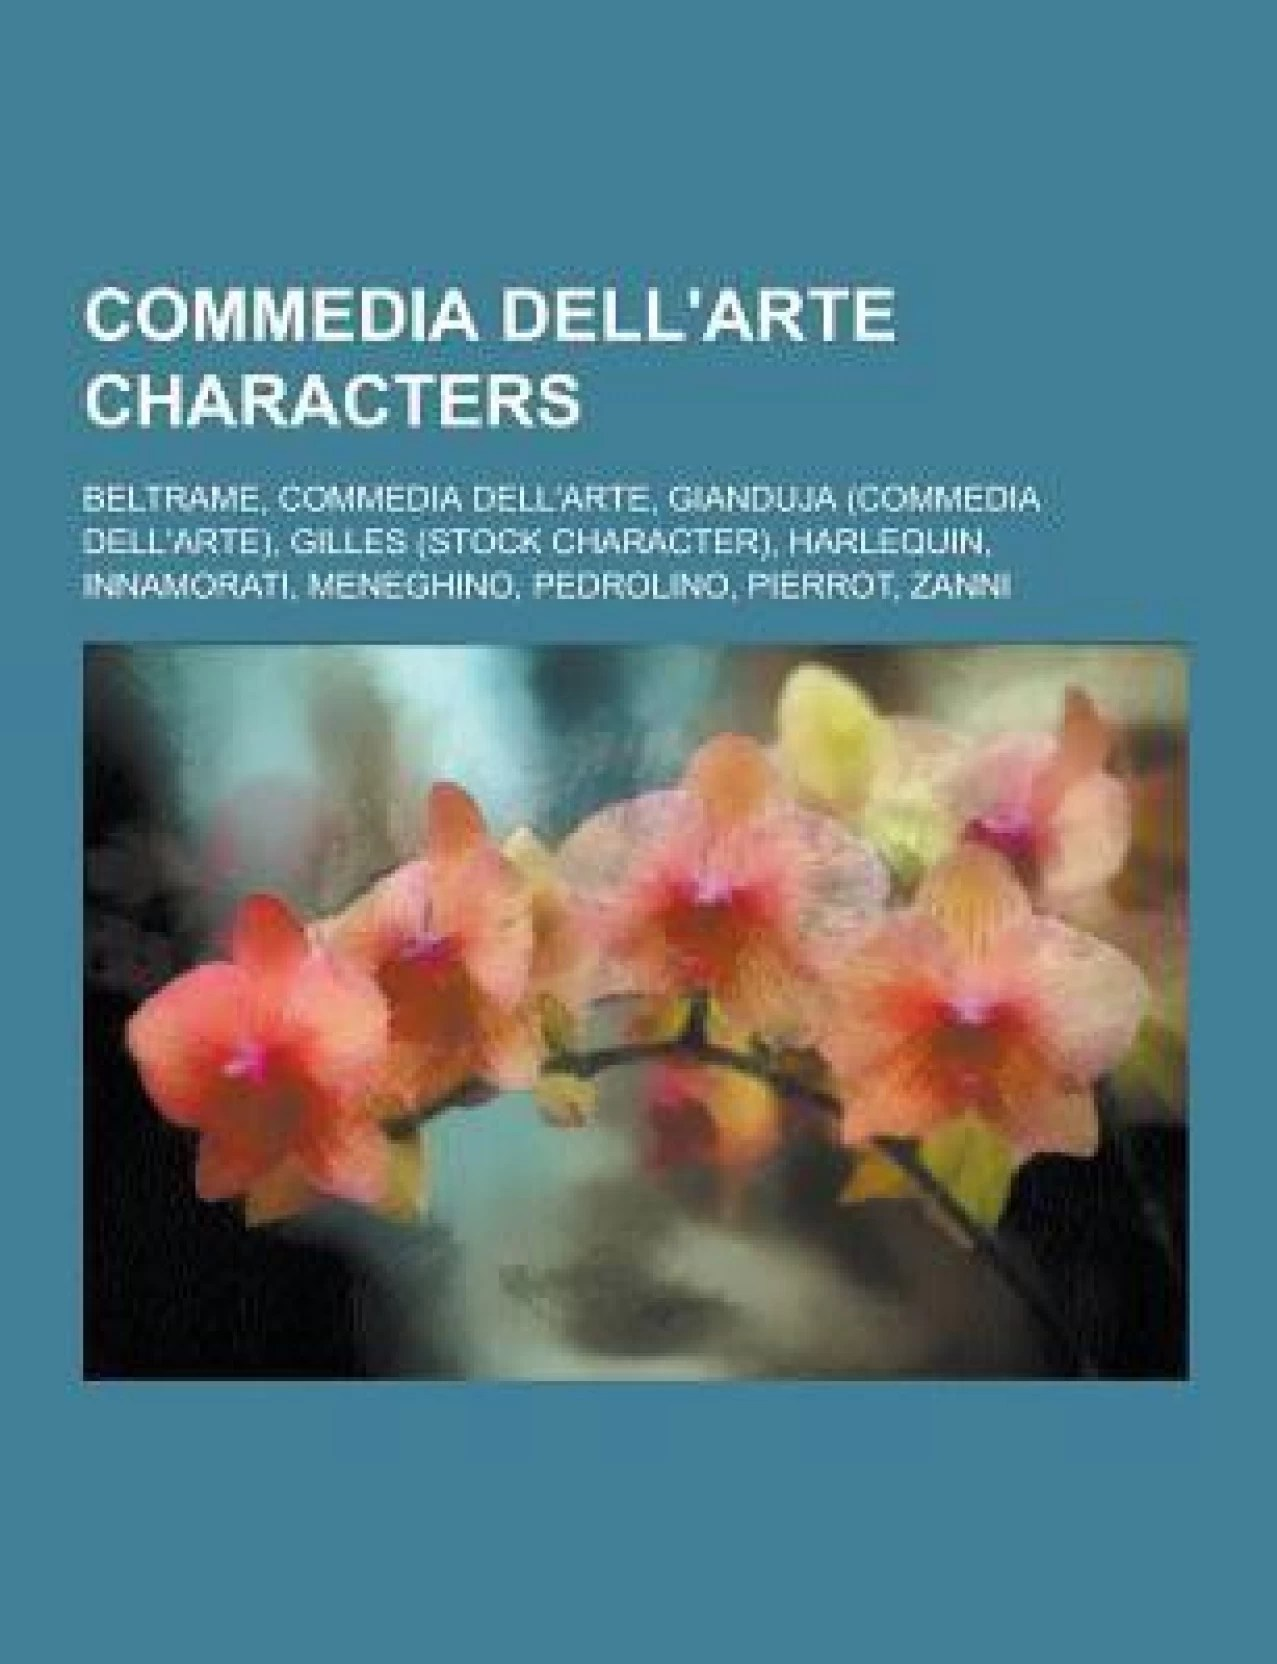 Arte Wikipedia It Commedia Dell Arte Characters Beltrame Commedia Dell Arte